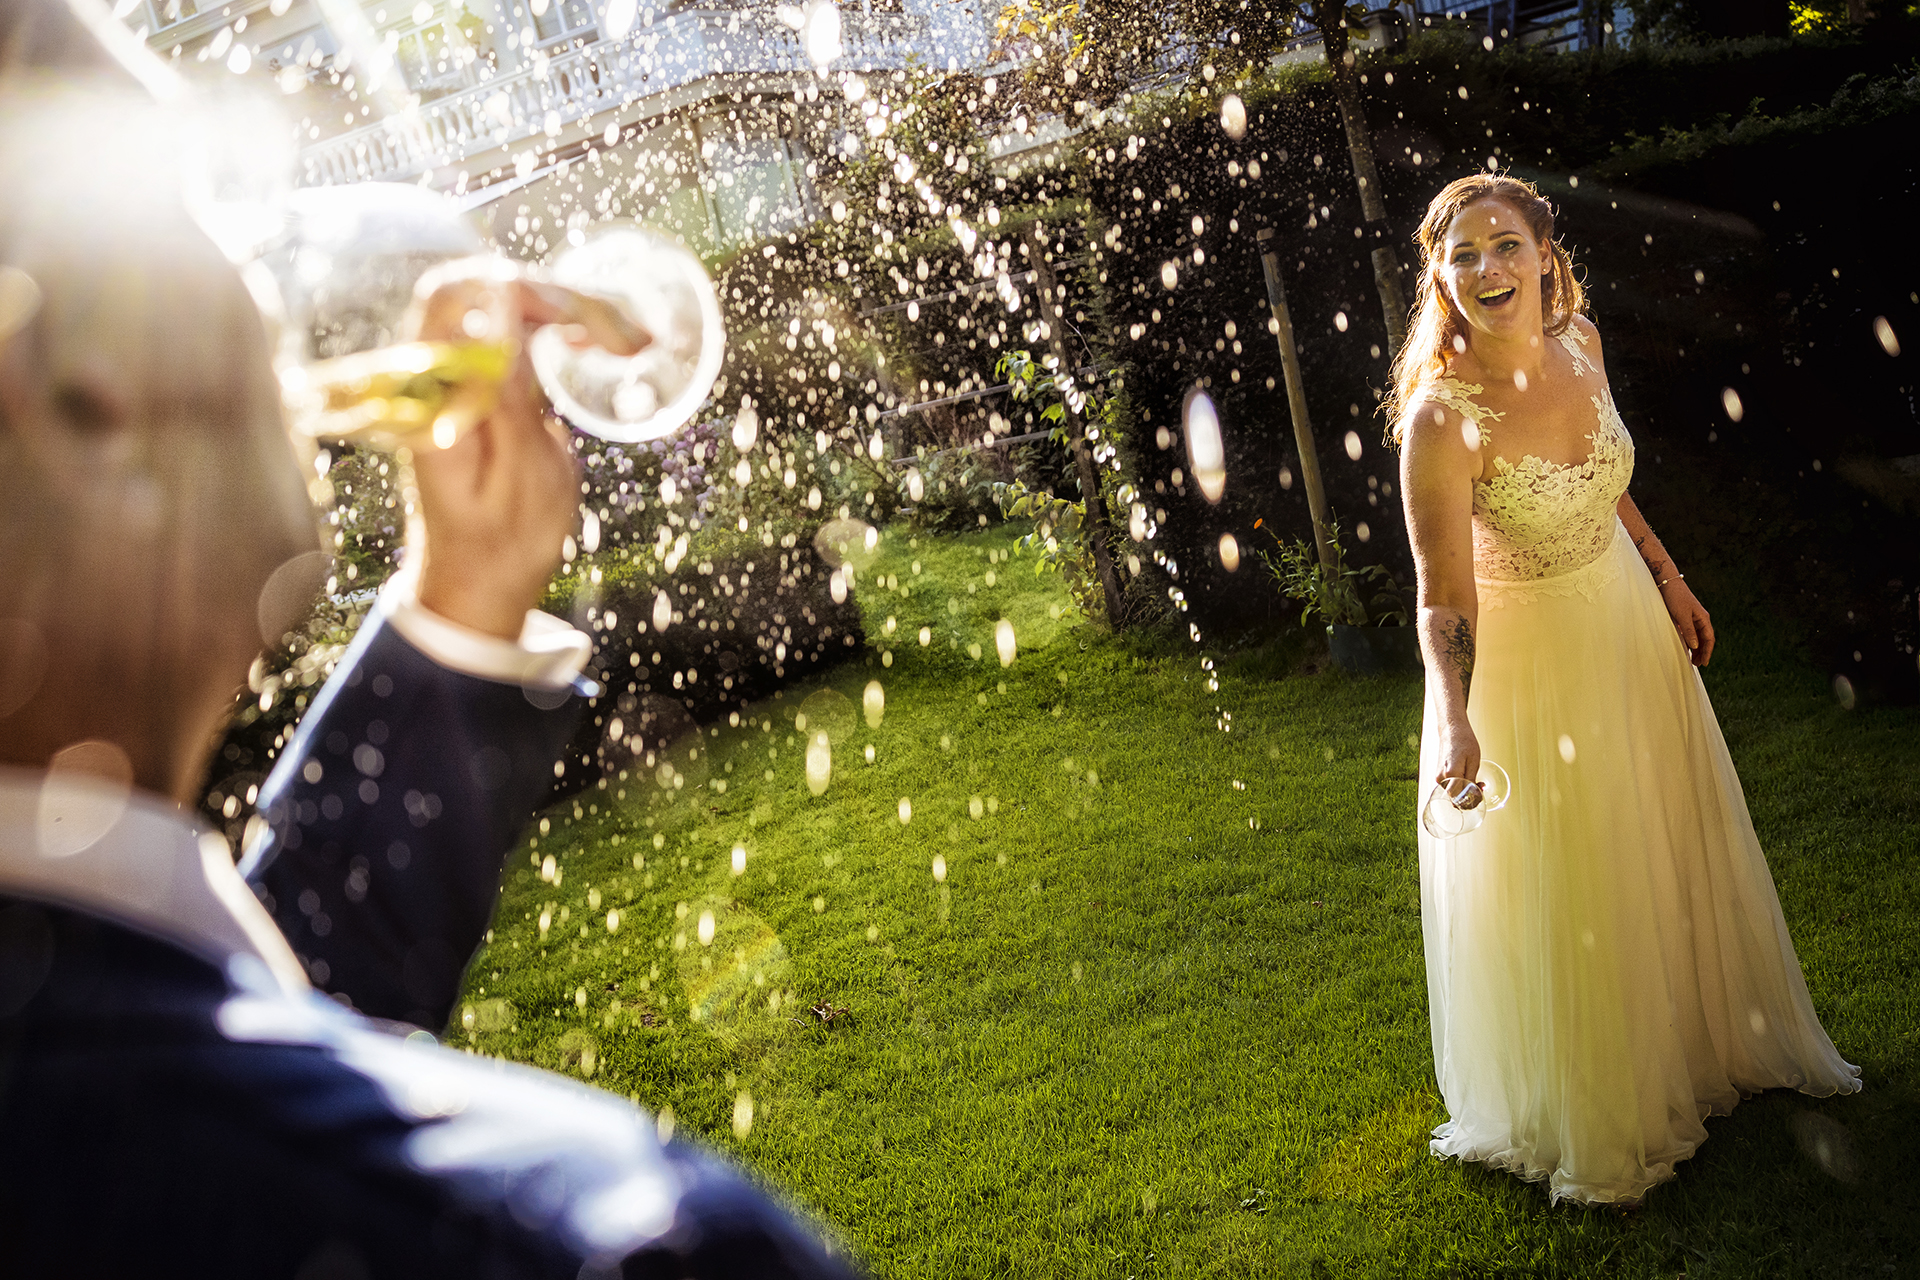 Bride with bubbles in garden - photo by Studio Damon Photograpy